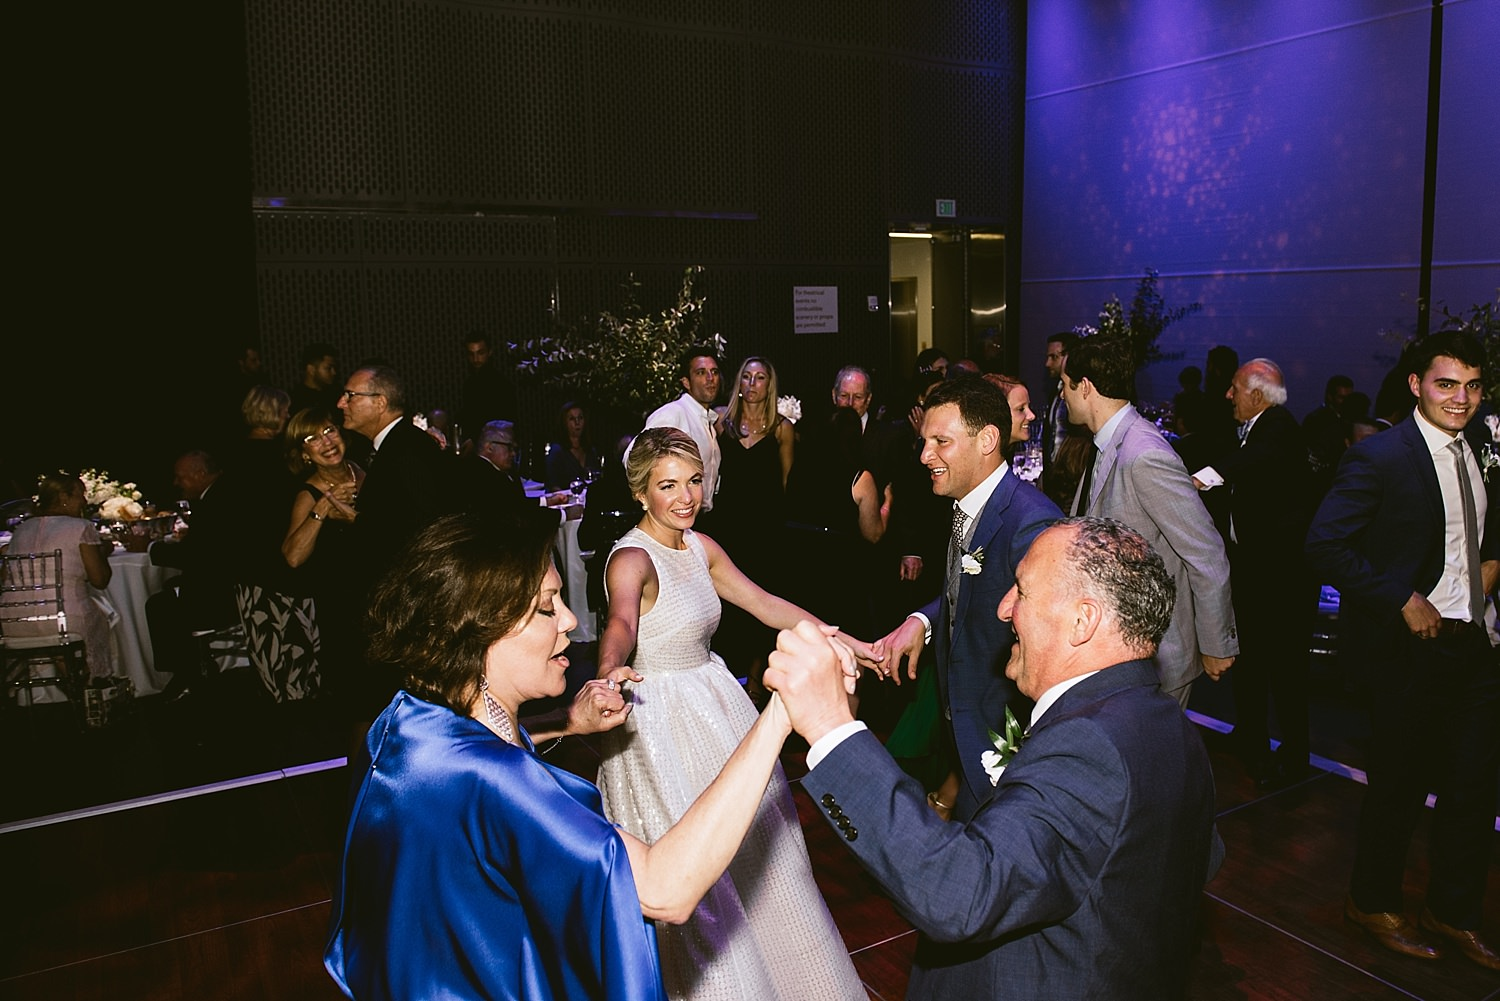 dancing with family at wedding